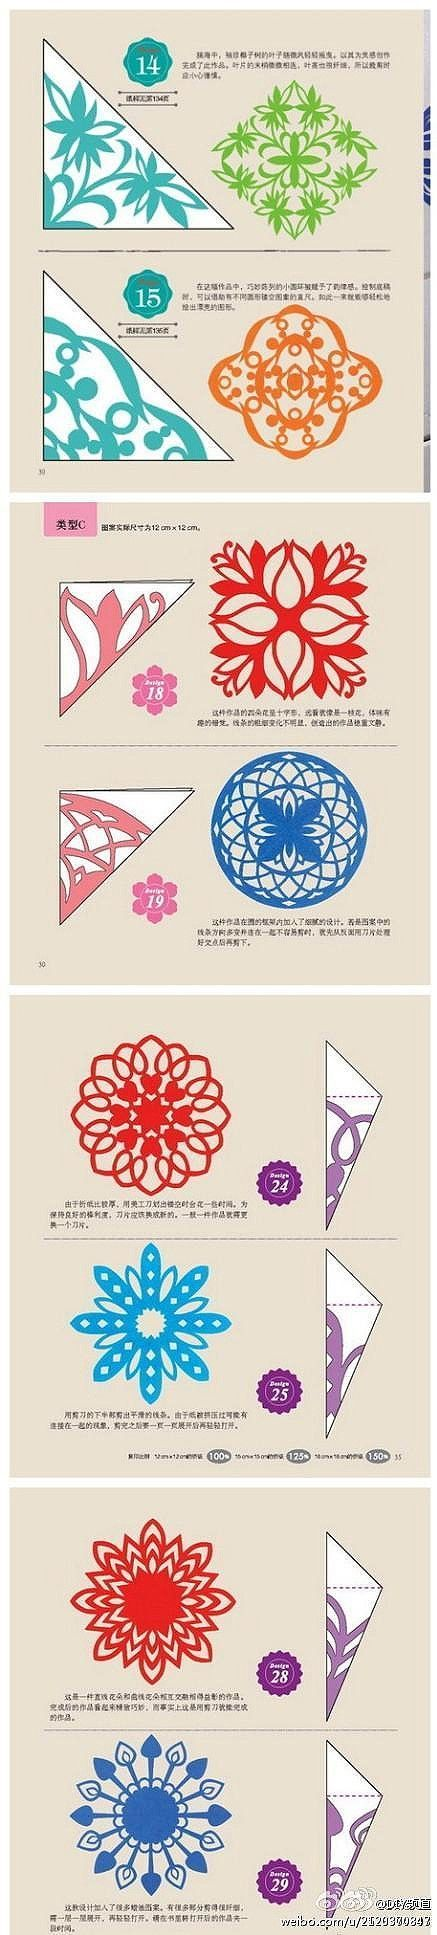 History of paper snowflakes